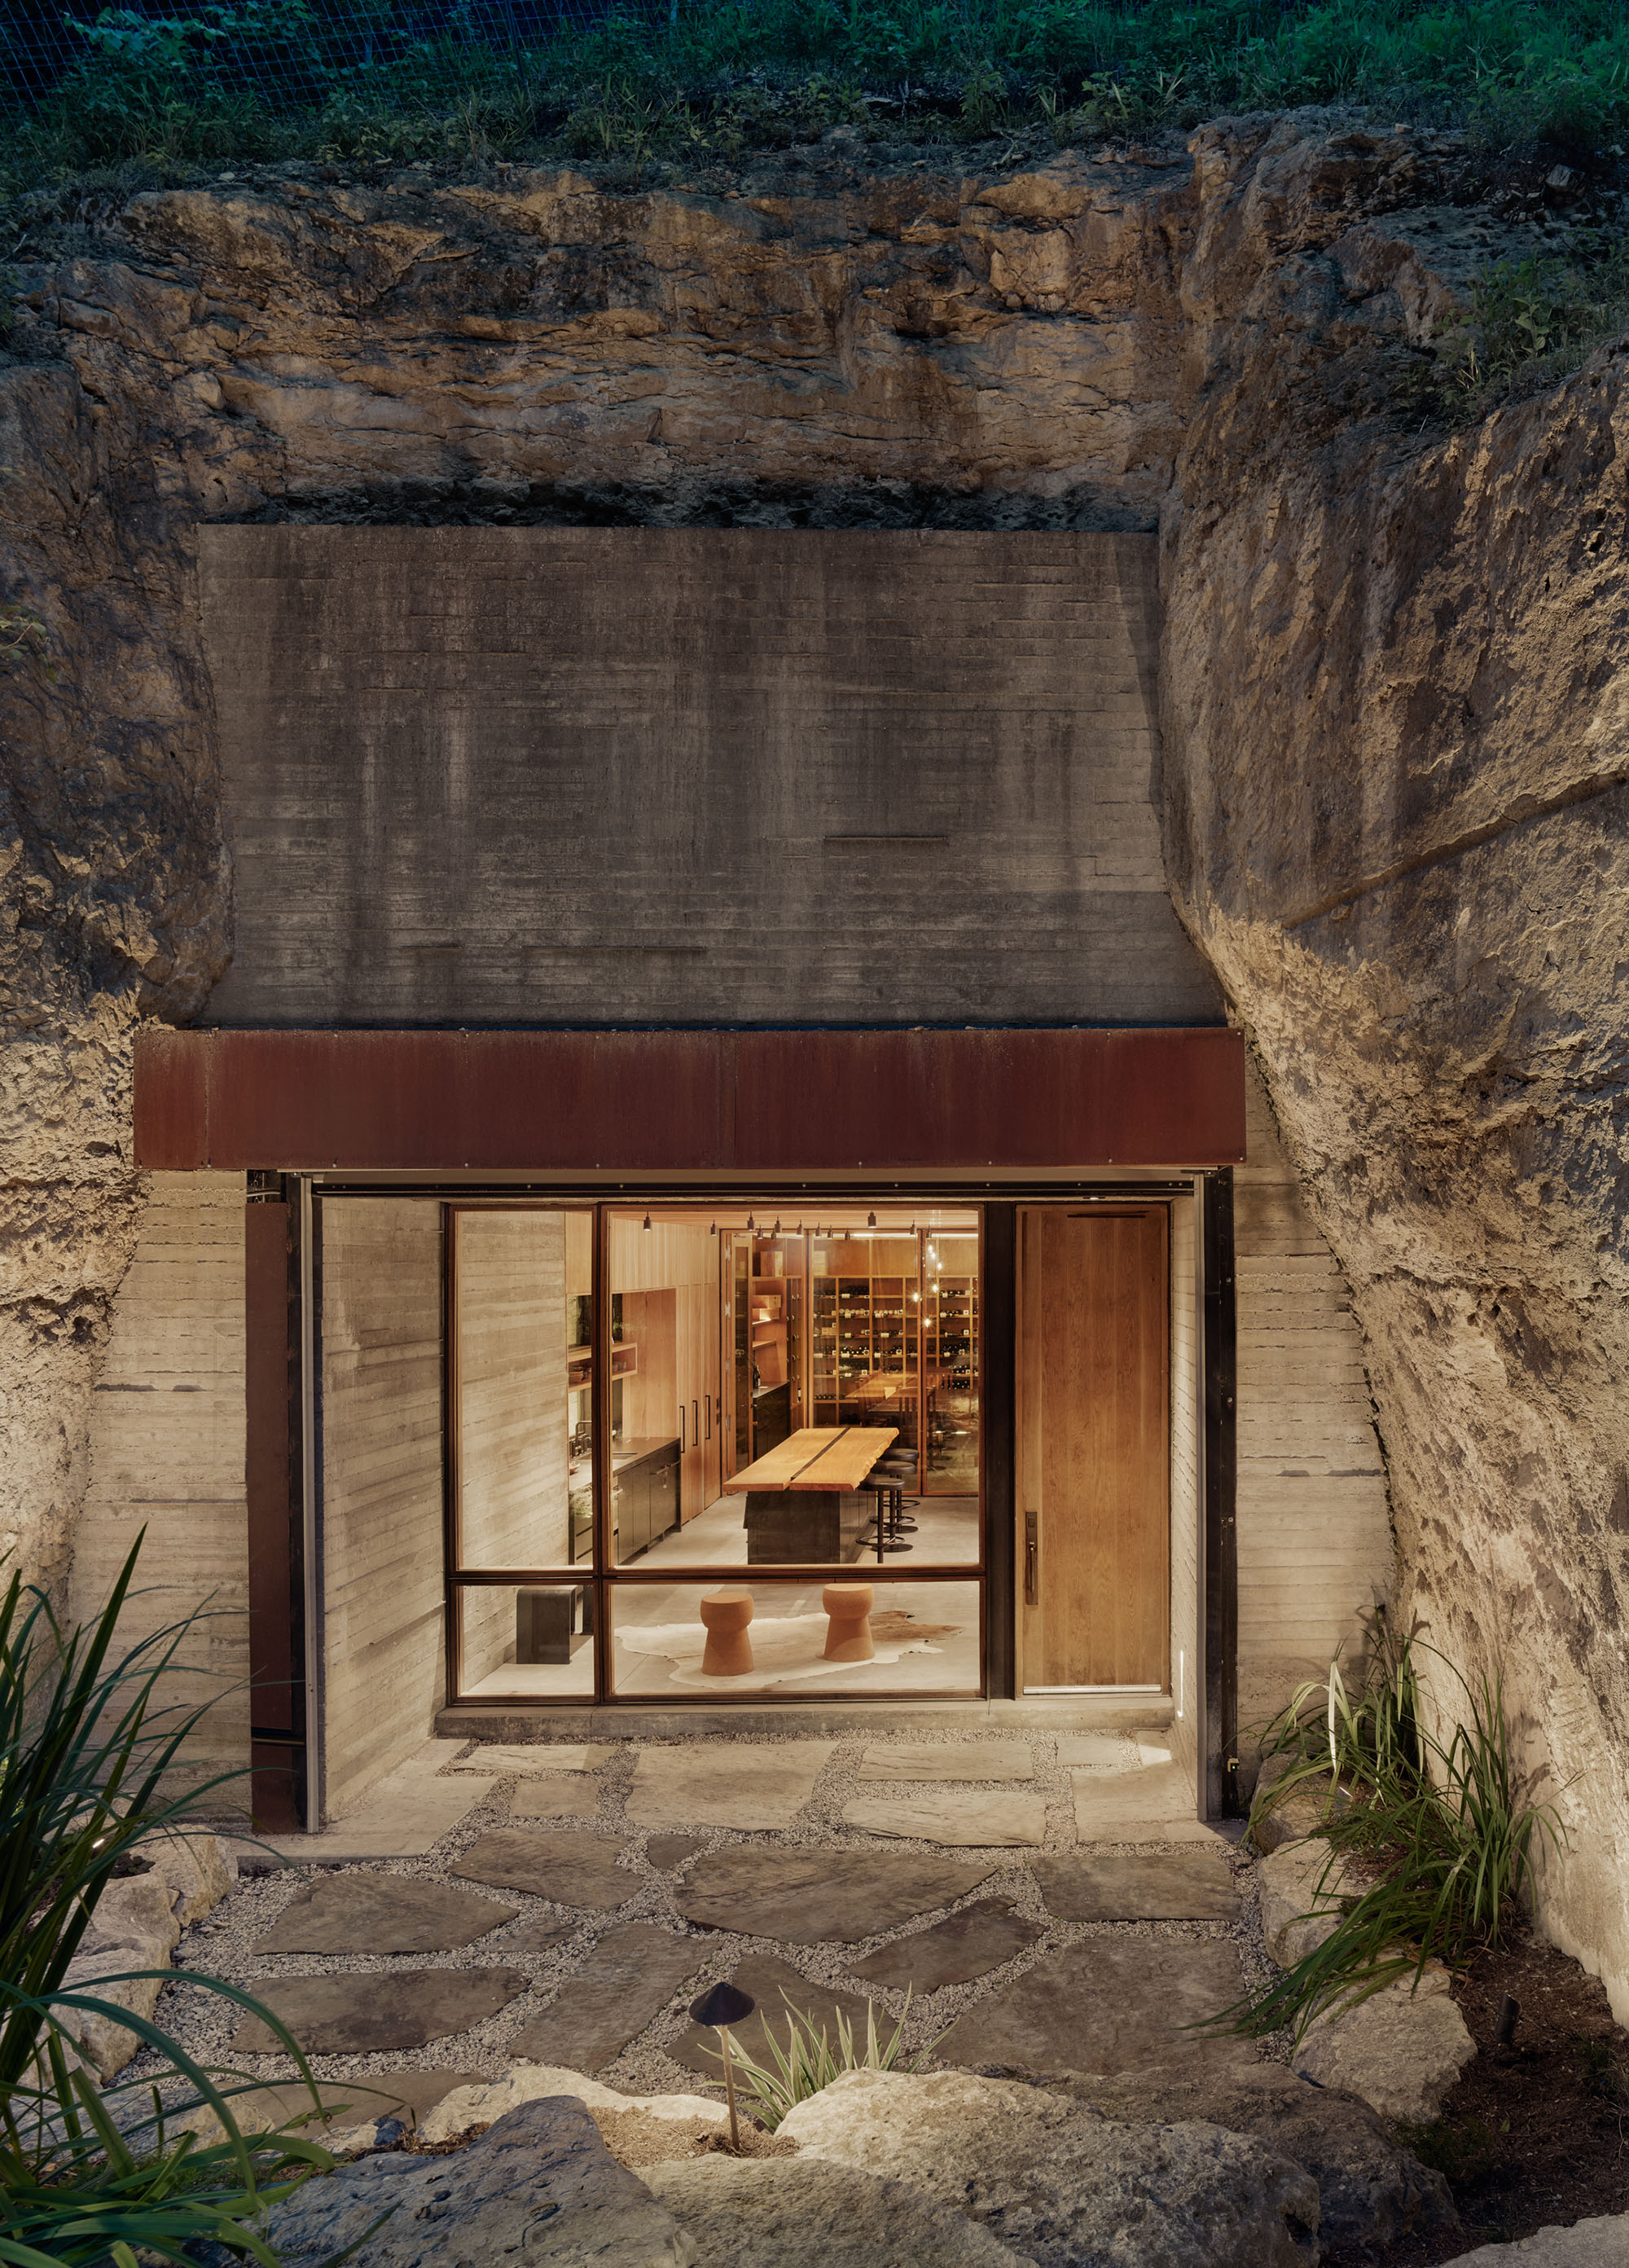 Hill Country Wine Cave - Clayton Korte project team